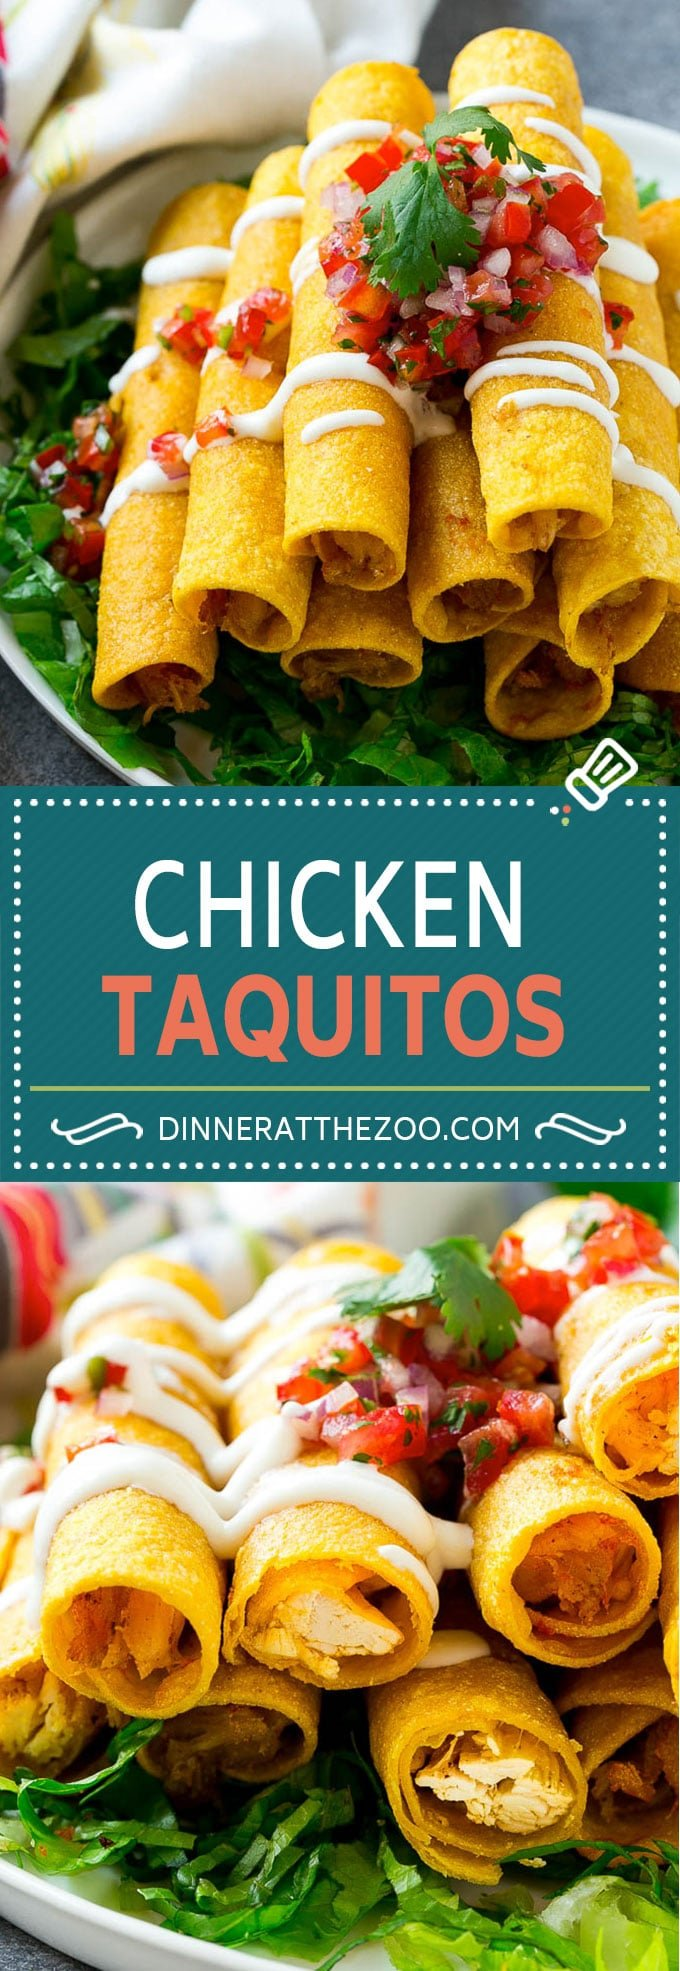 Chicken Taquitos Recipe | Baked Chicken Taquitos | Fried Chicken Taquitos | Mexican Appetizer | Chicken Tortillas #taquitos #chicken #appetizer #tortillas #mexicanfood #dinneratthezoo